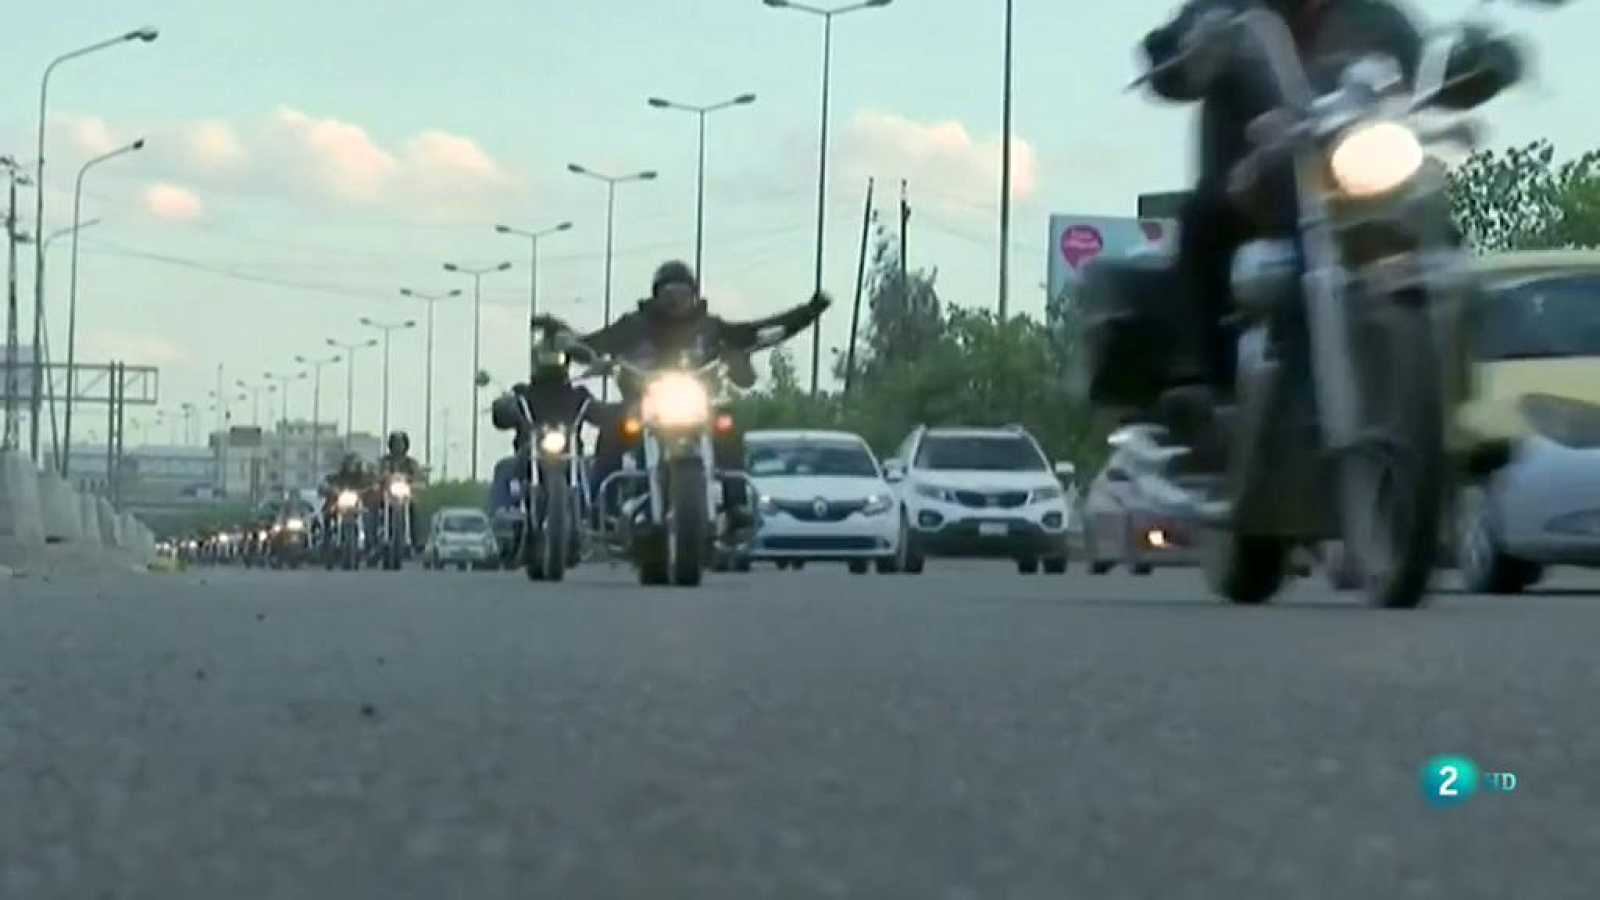 Los Iraq Bikers